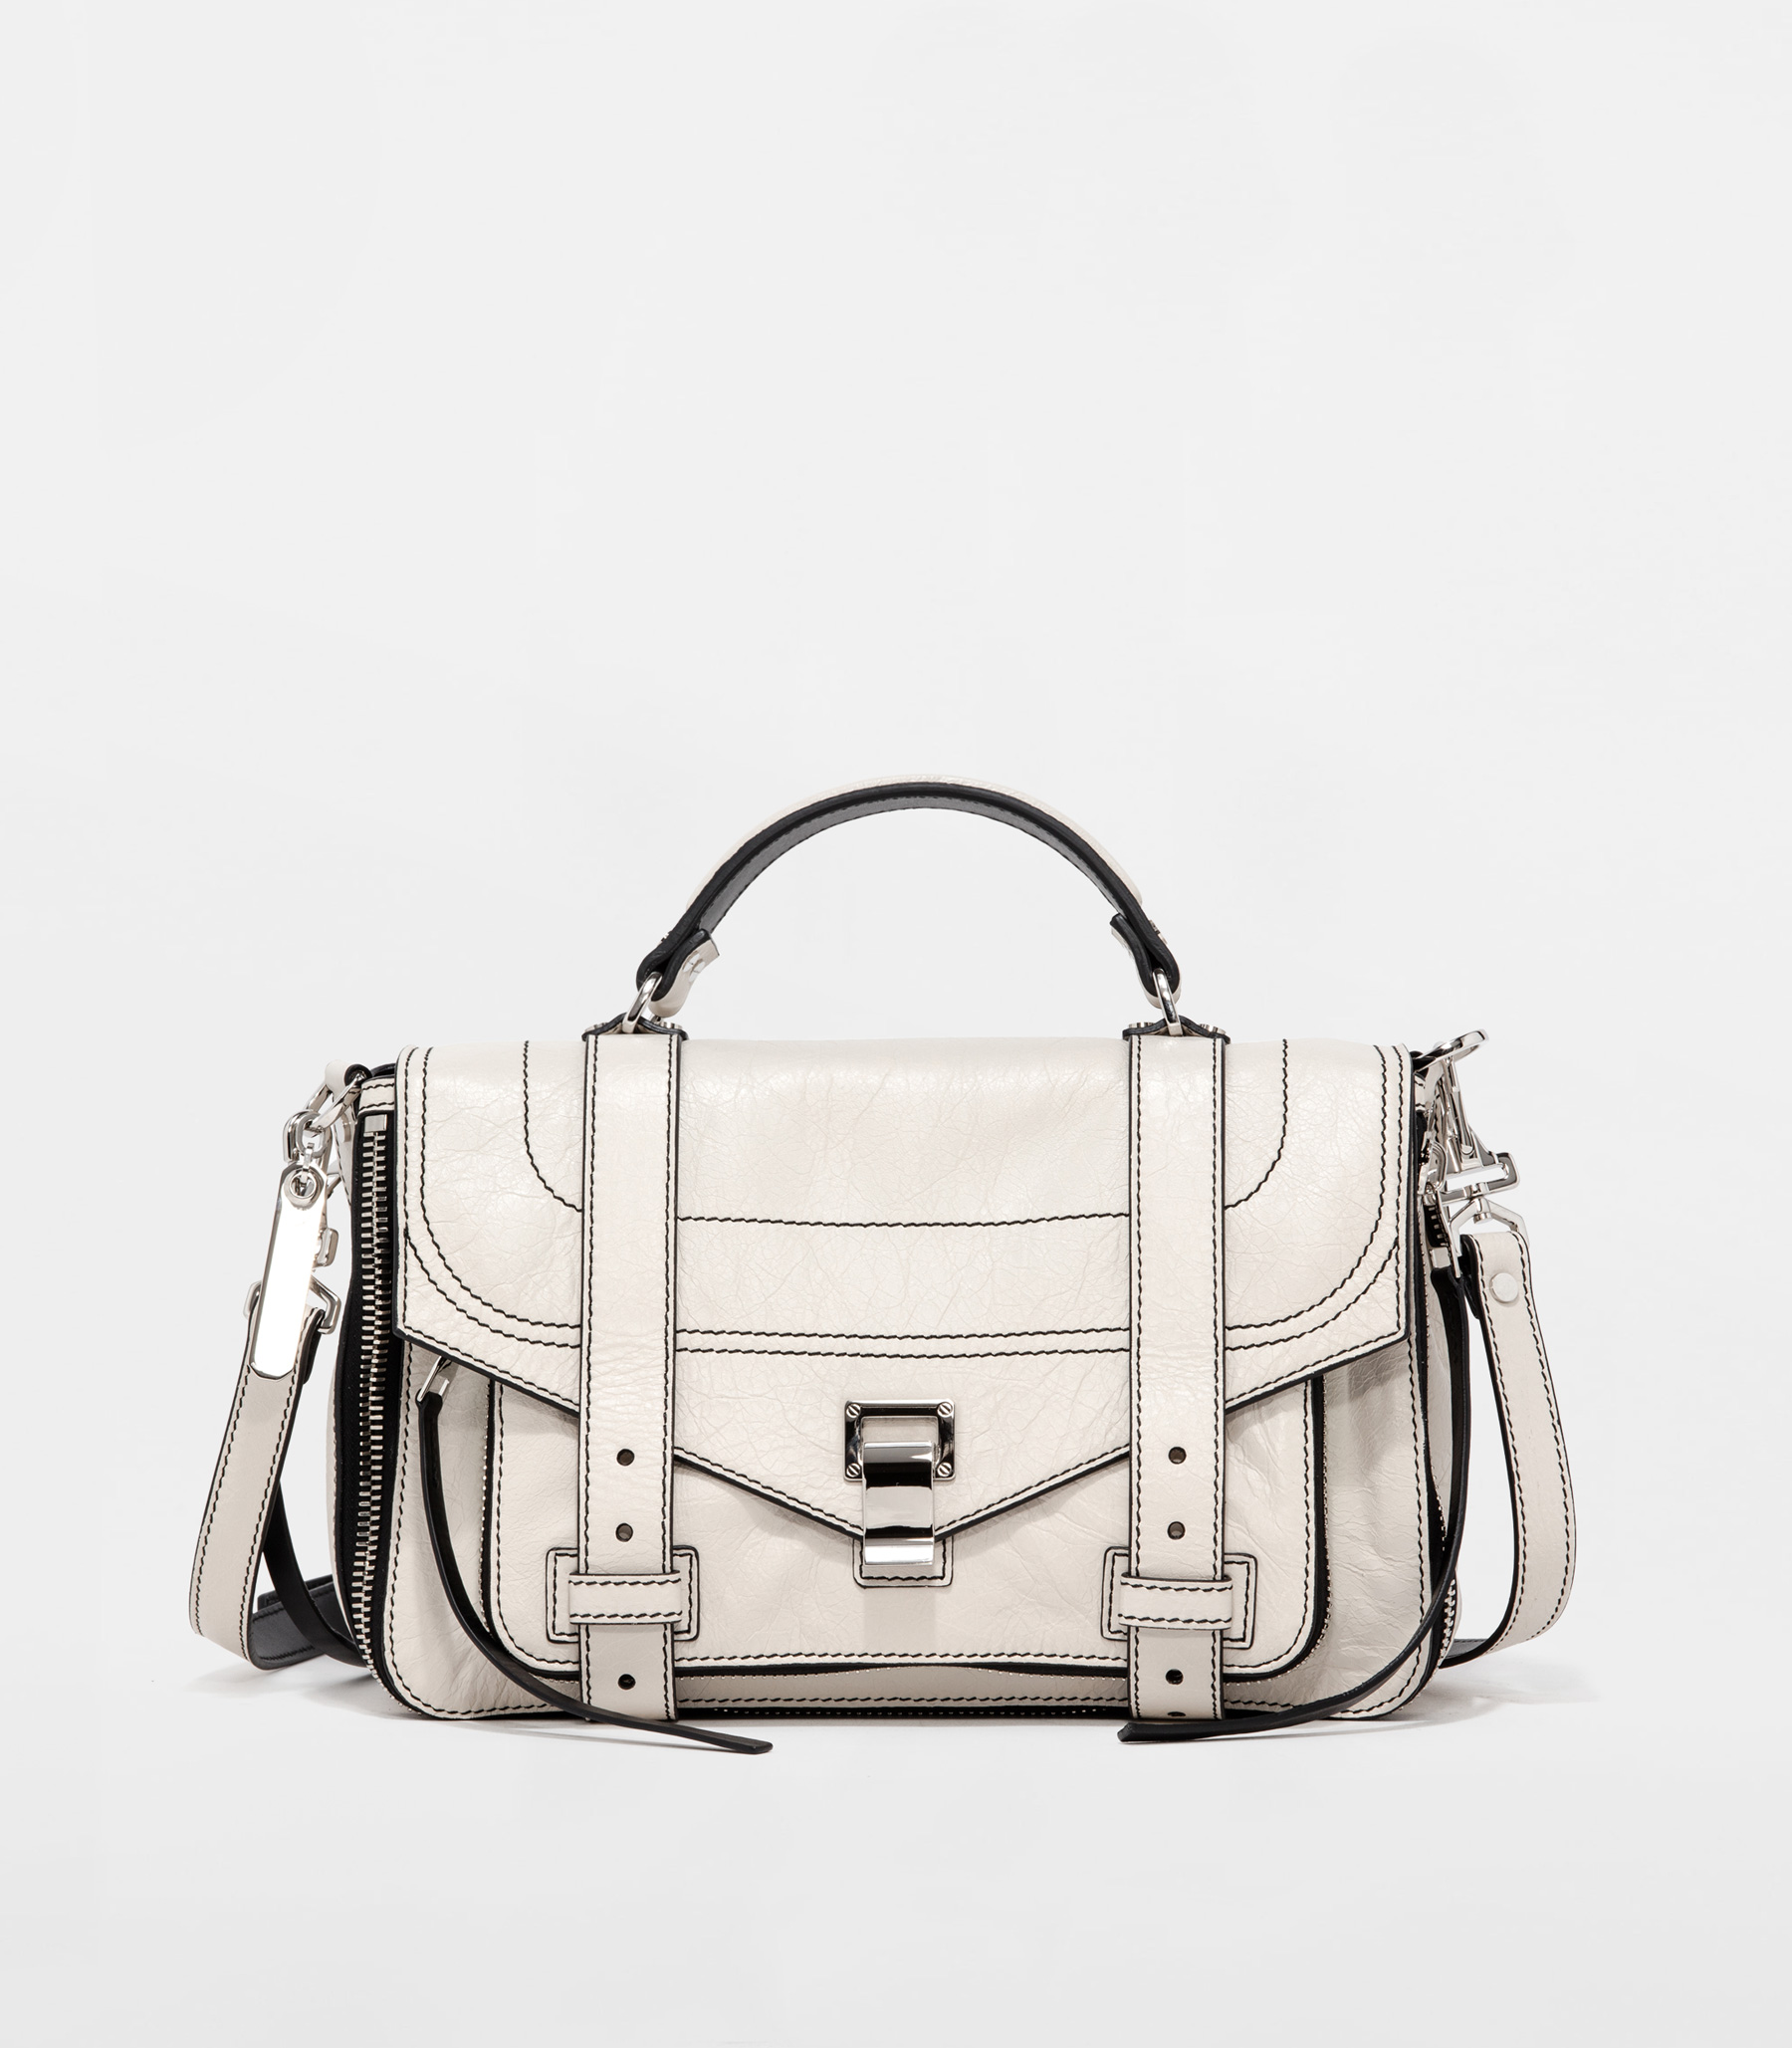 Butter Schouler Proenza Briefcase White Leather Tiny Playground In xI7q8q